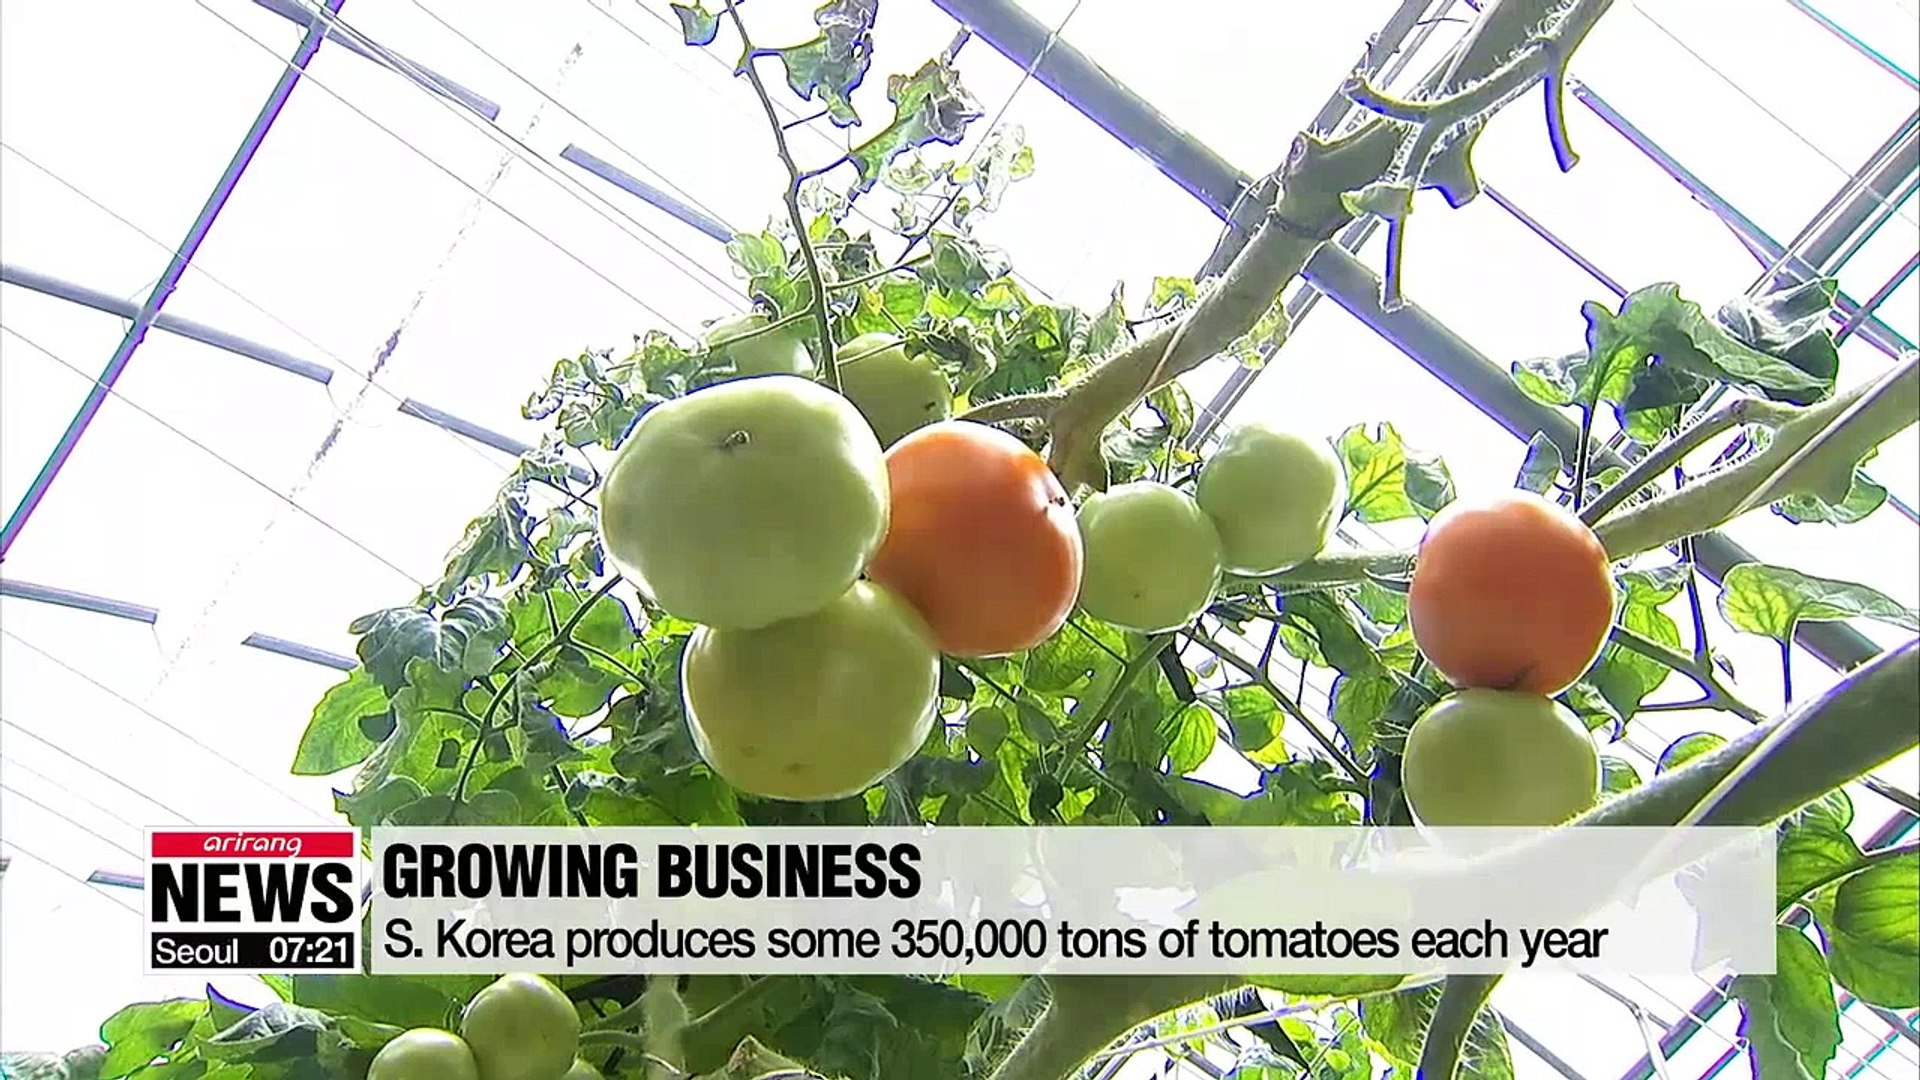 Local researchers discover bacteria that fends off disease from tomatoes